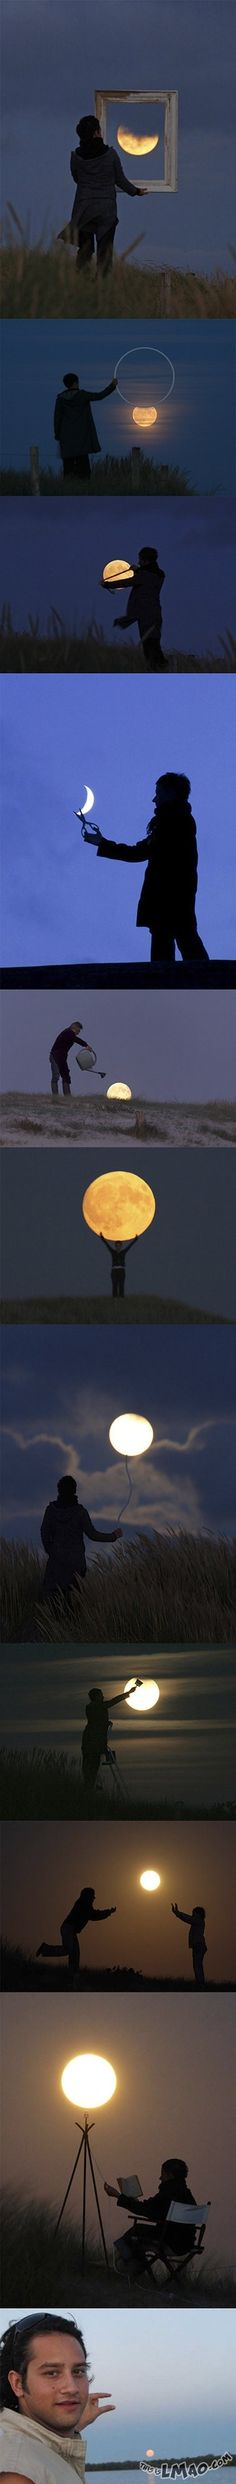 Will this make you laugh? The Moon